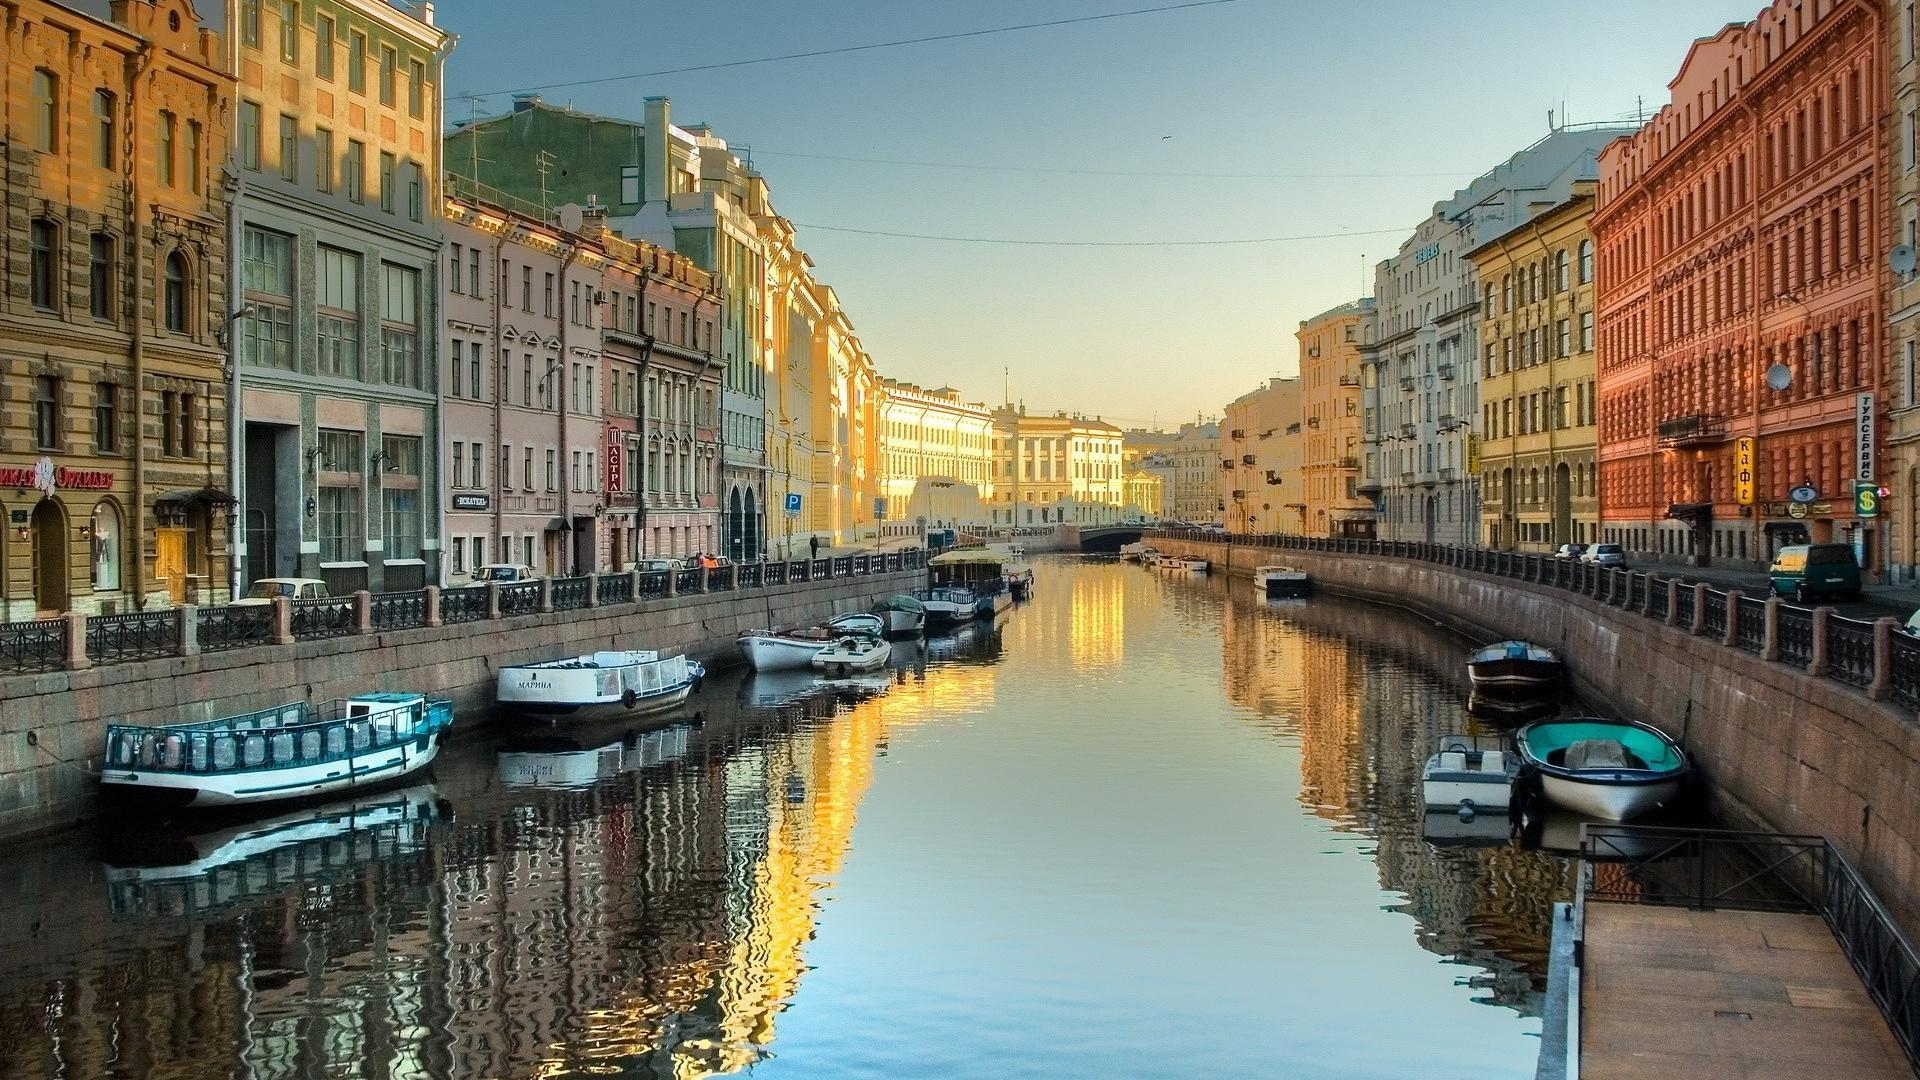 ???? Russia saint petersburg canal cityscapes wallpaper | (54296)